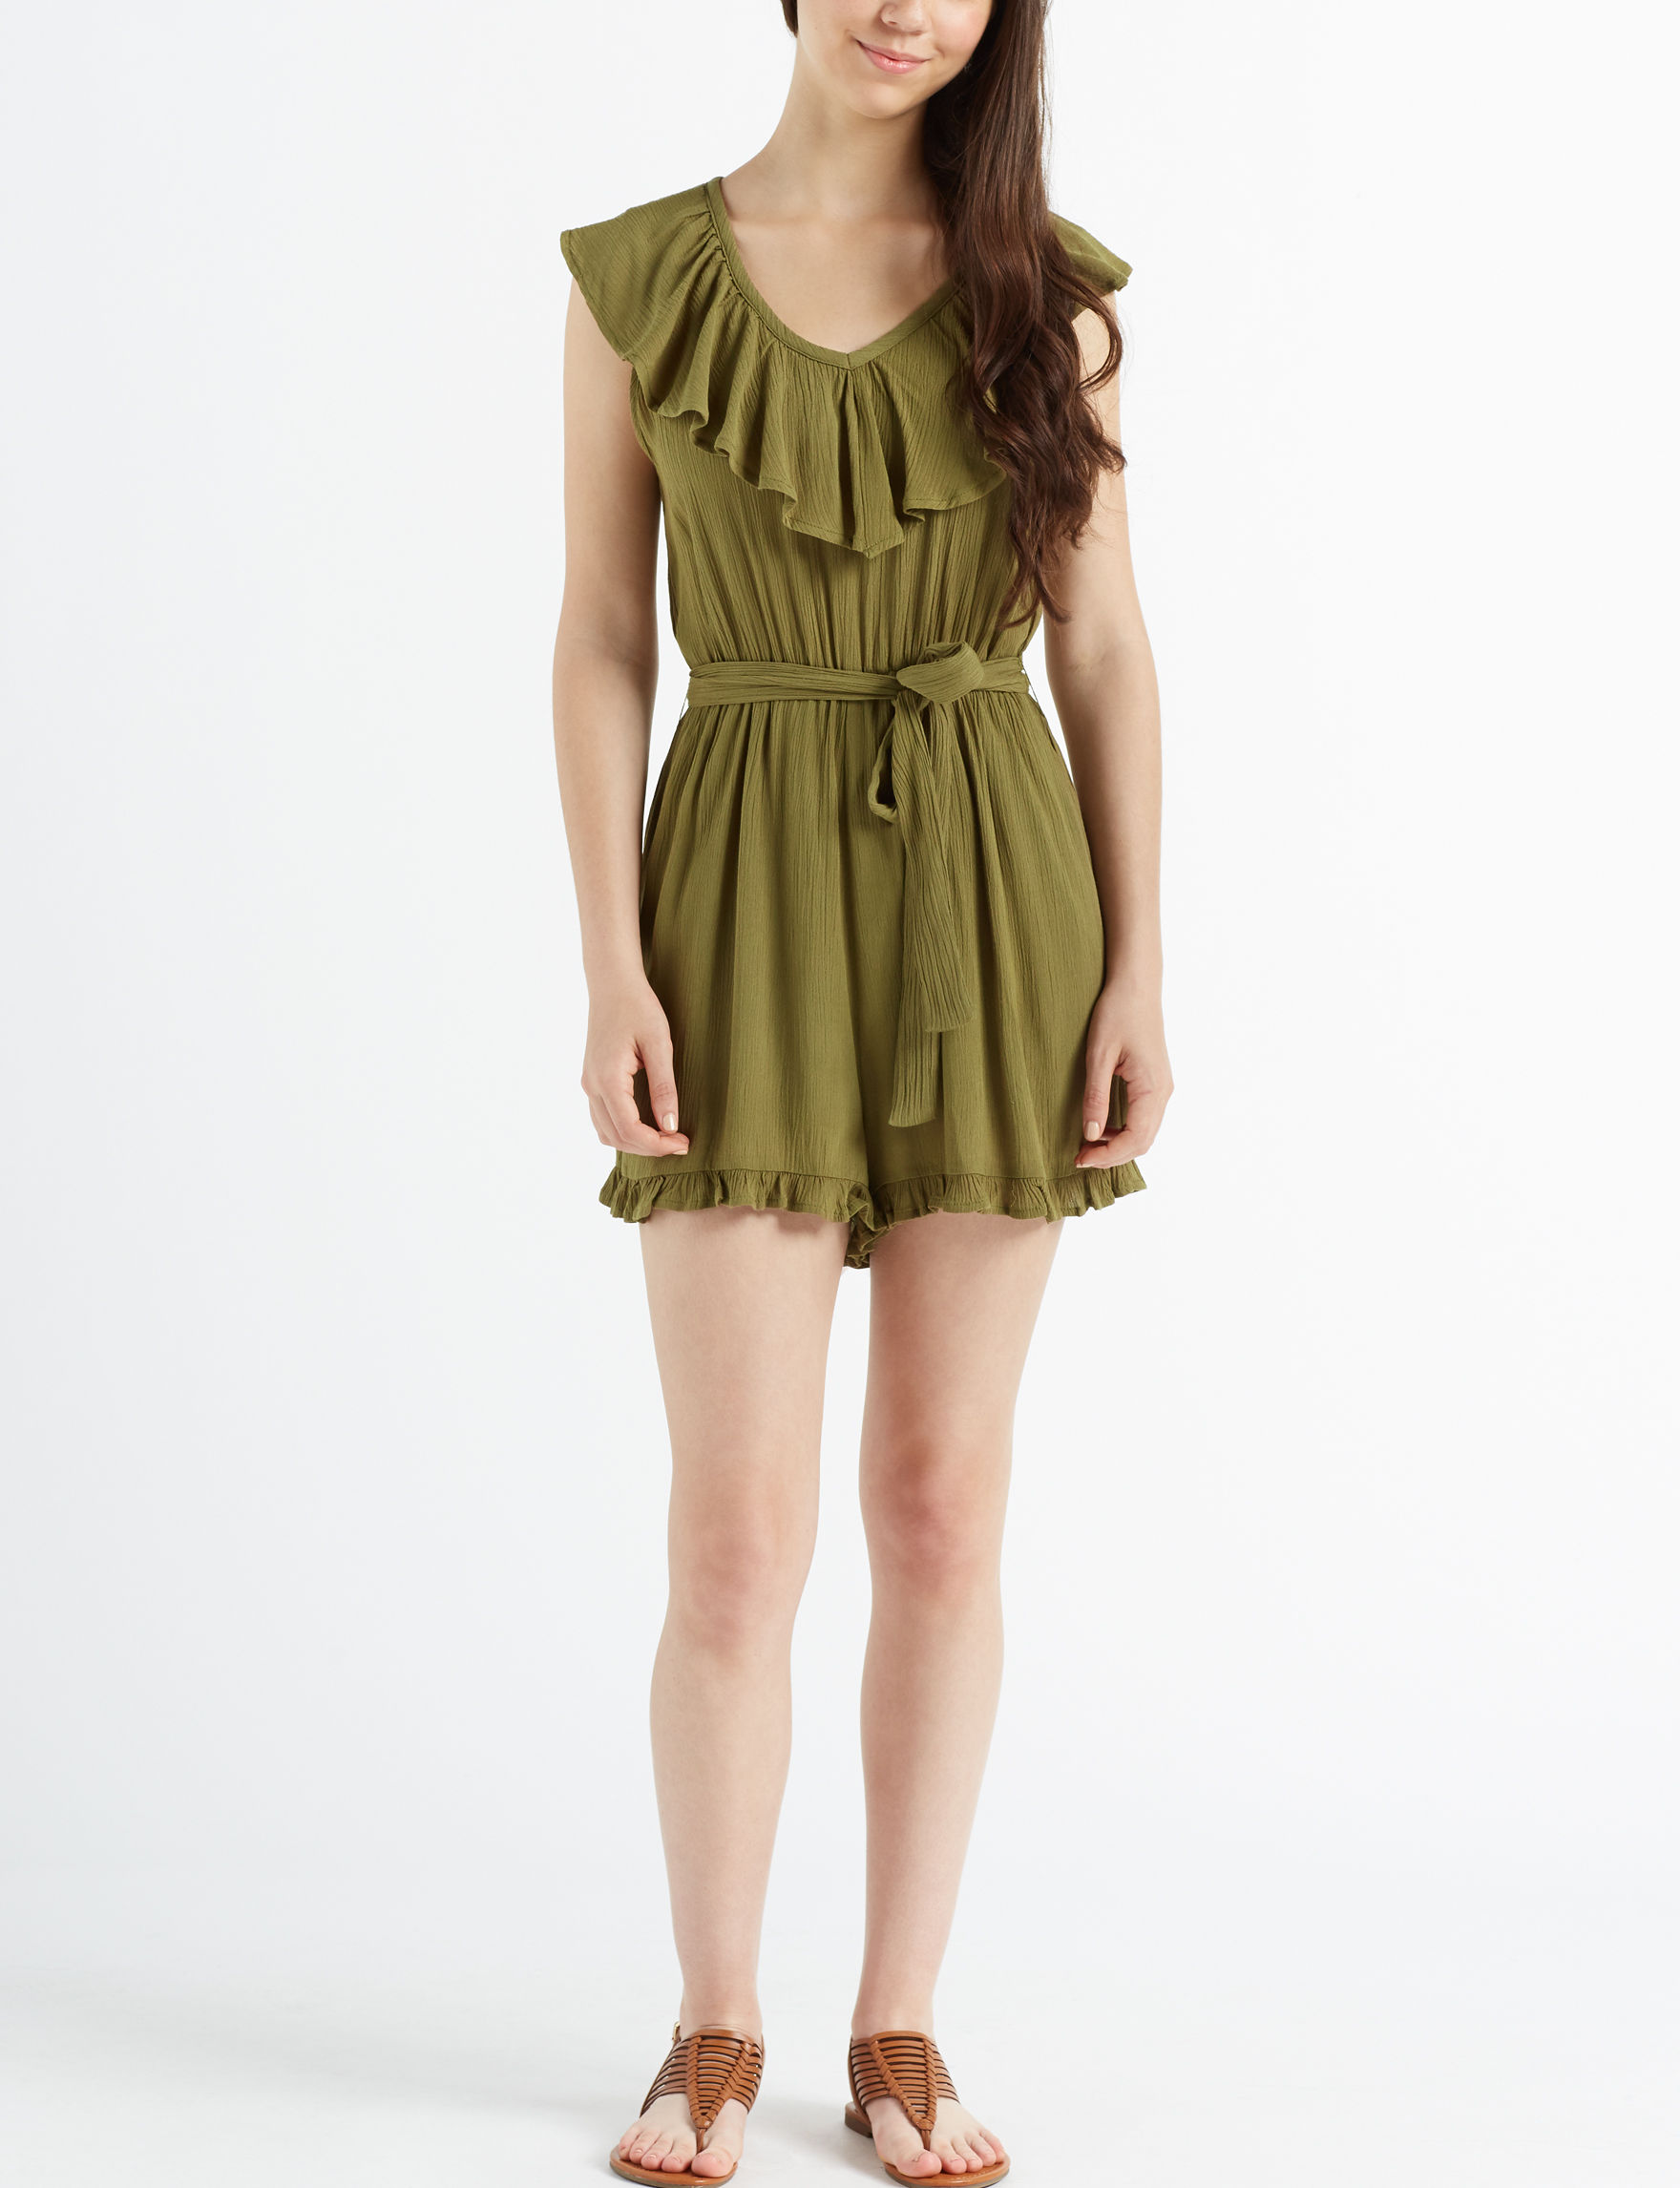 Wishful Park Olive Everyday & Casual